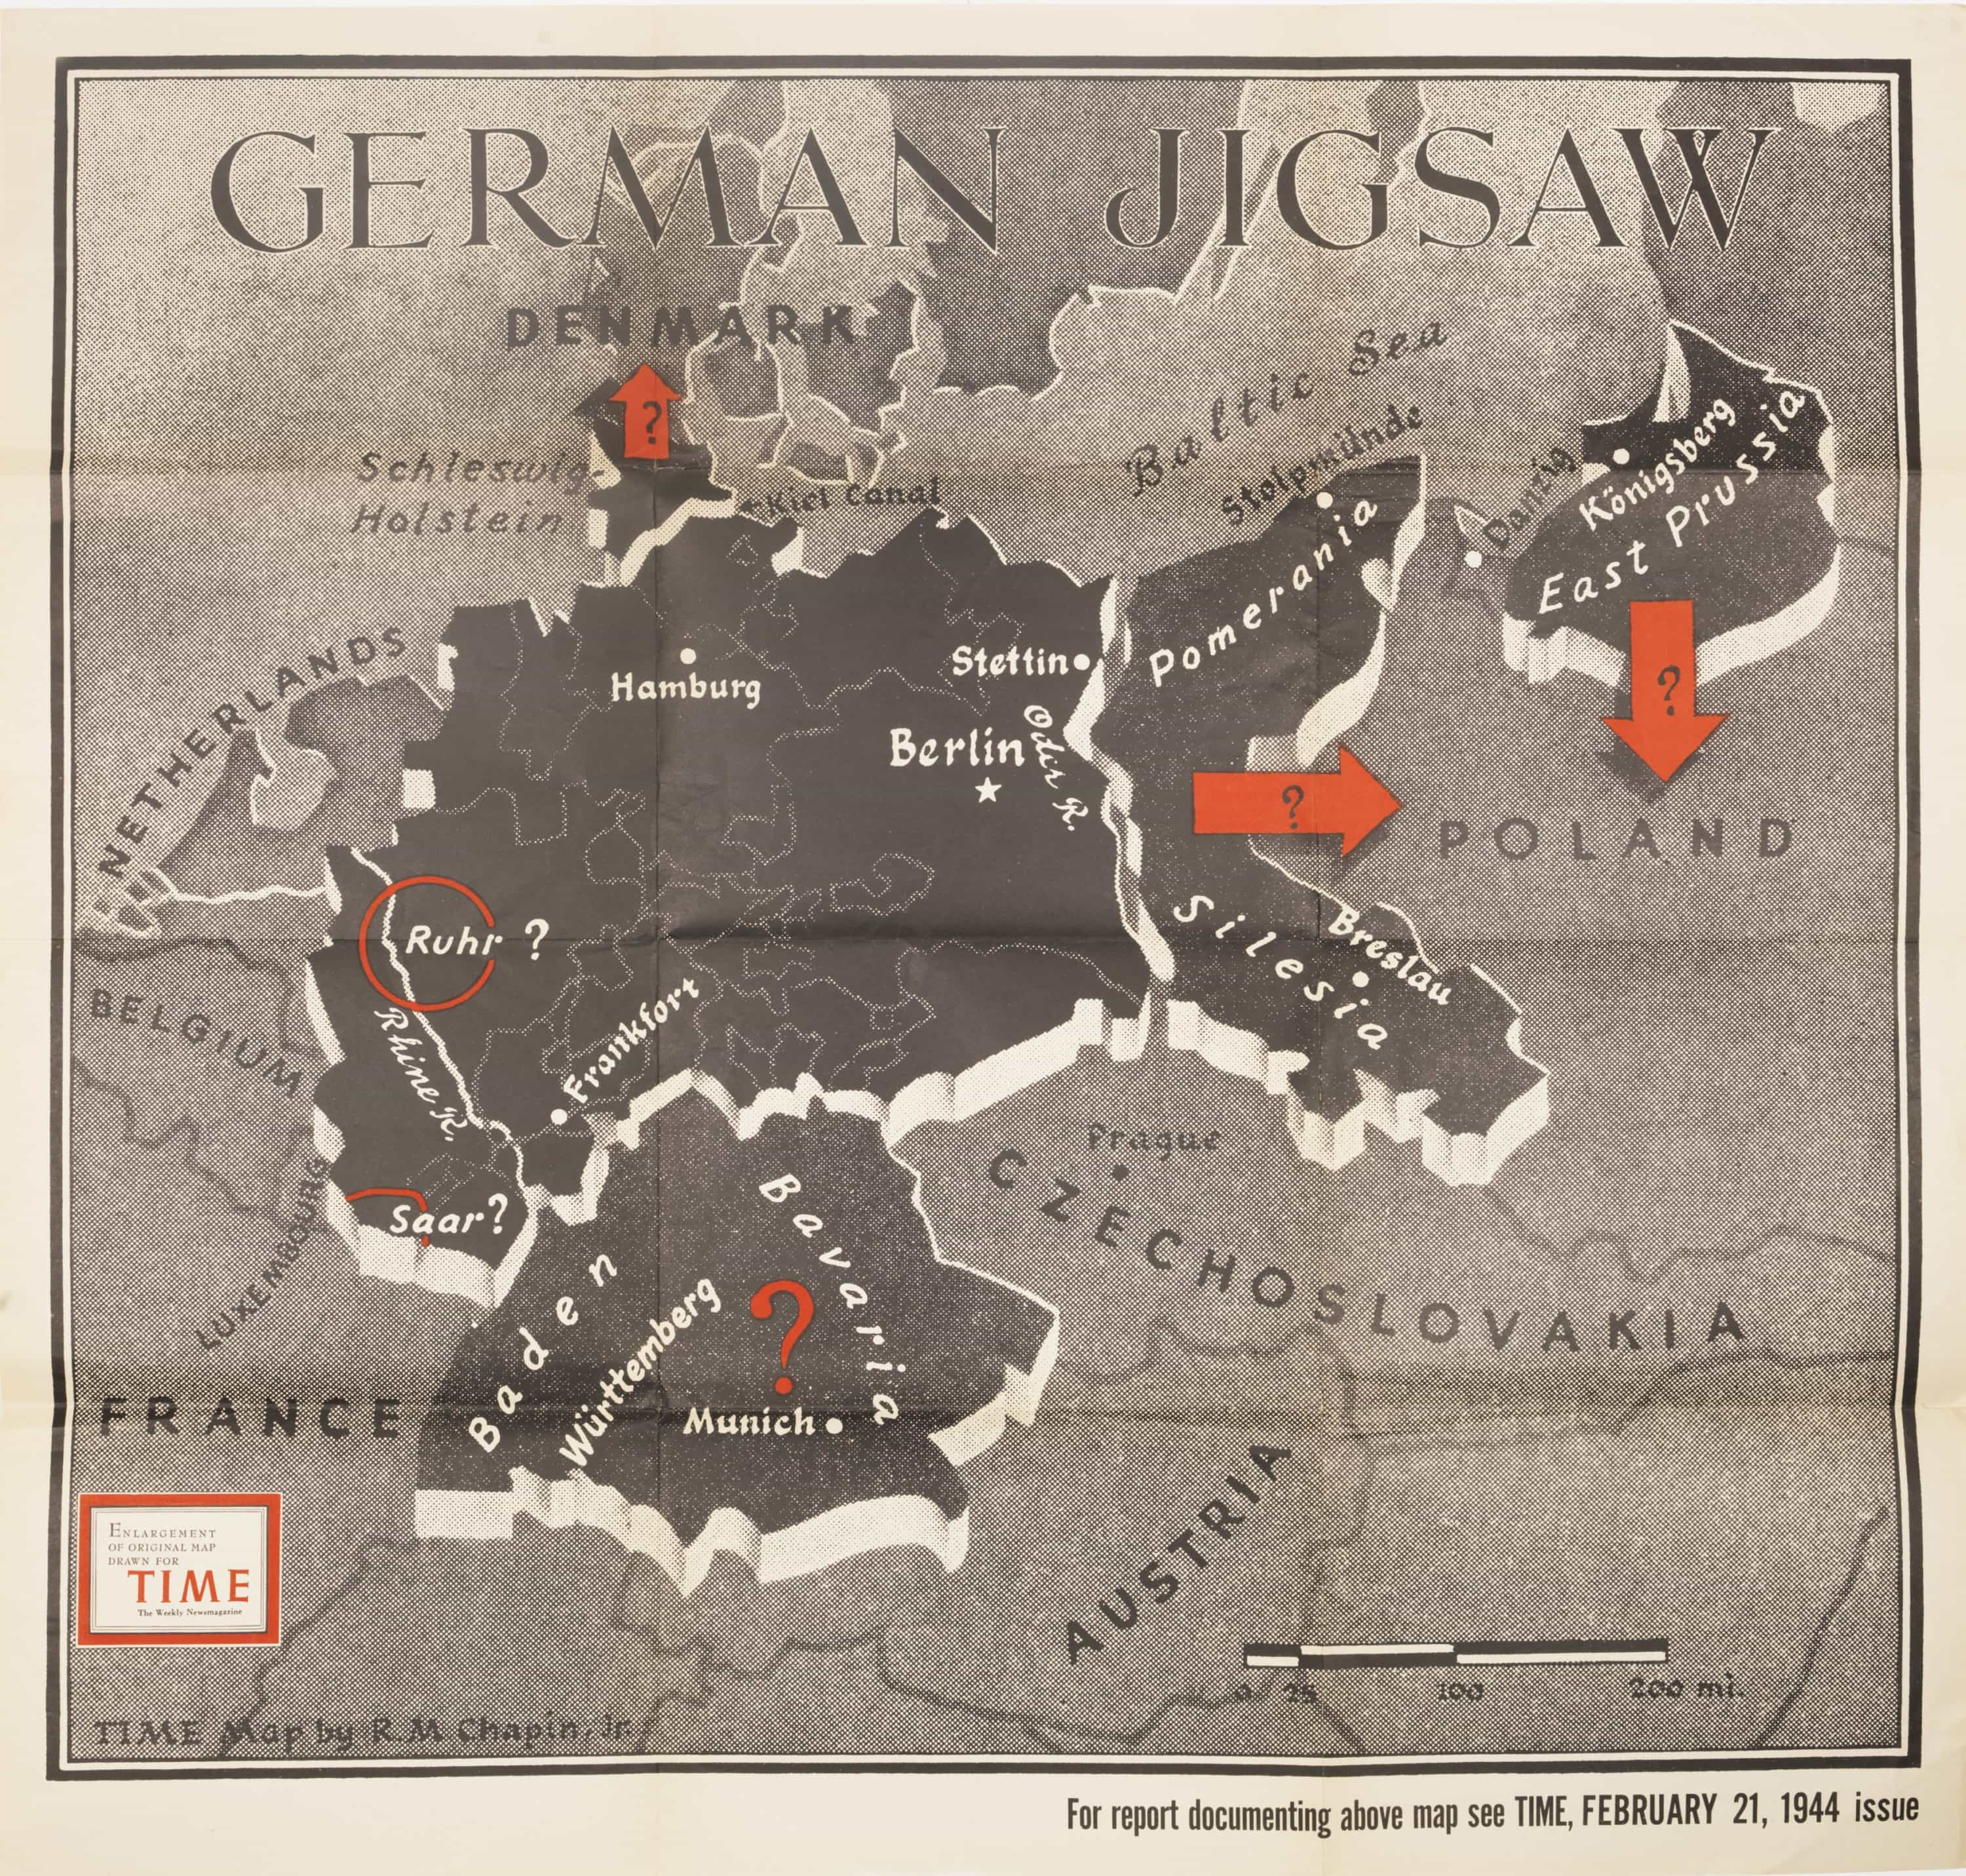 Map Of Germany Post Ww2.Time Magazine Map Of The Post Wwii German Jigsaw Rare